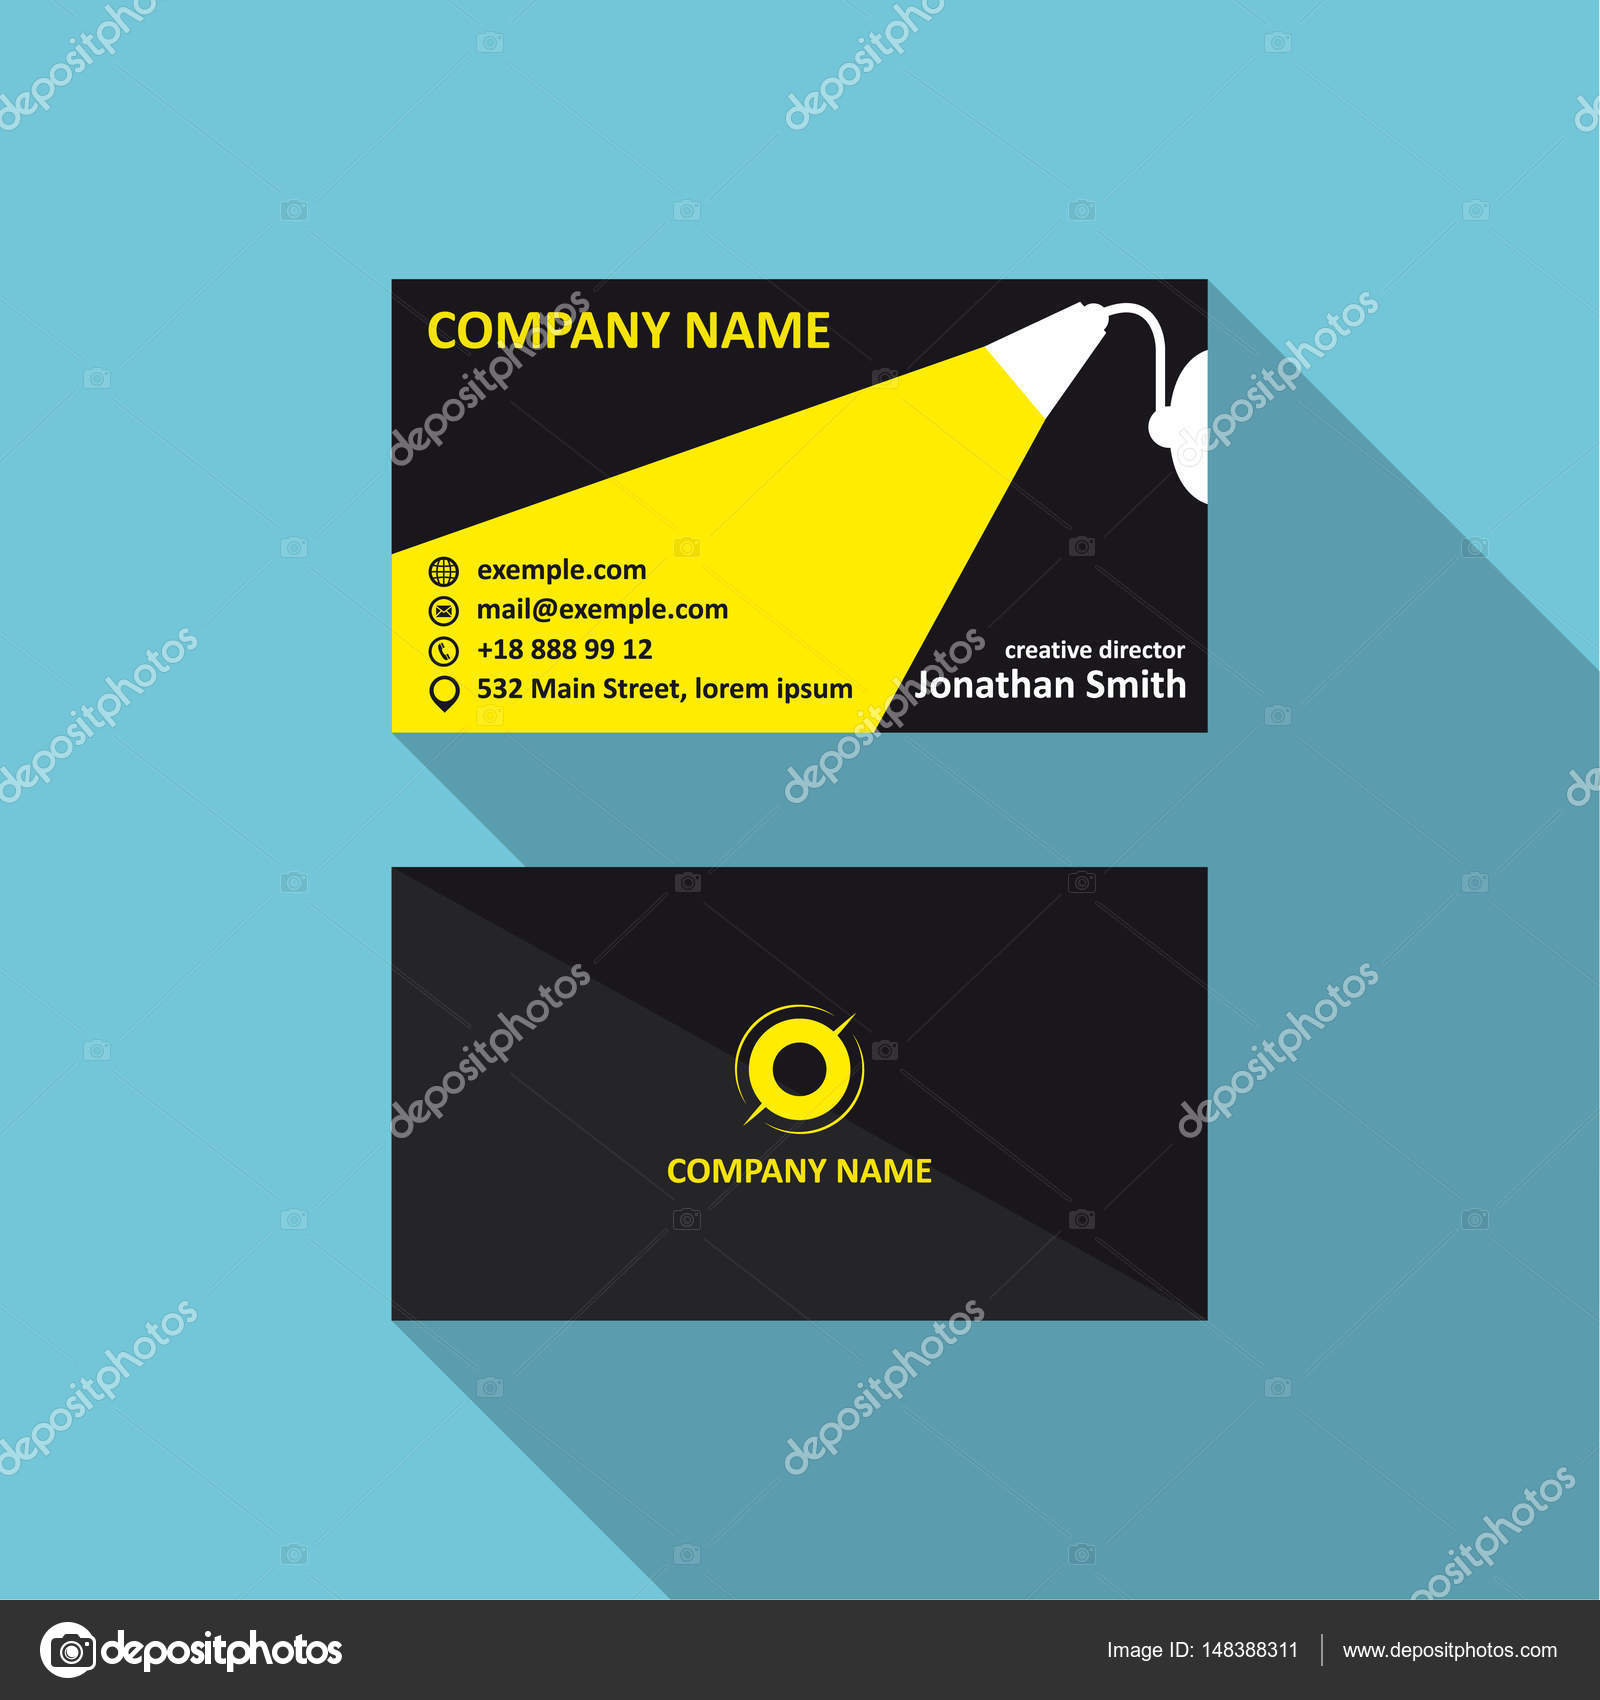 Vector business card template with light concept corporae logo business card template with light concept corporae logo visit and phone number address vector illustration 90x50 proportions vector by vi73 reheart Choice Image